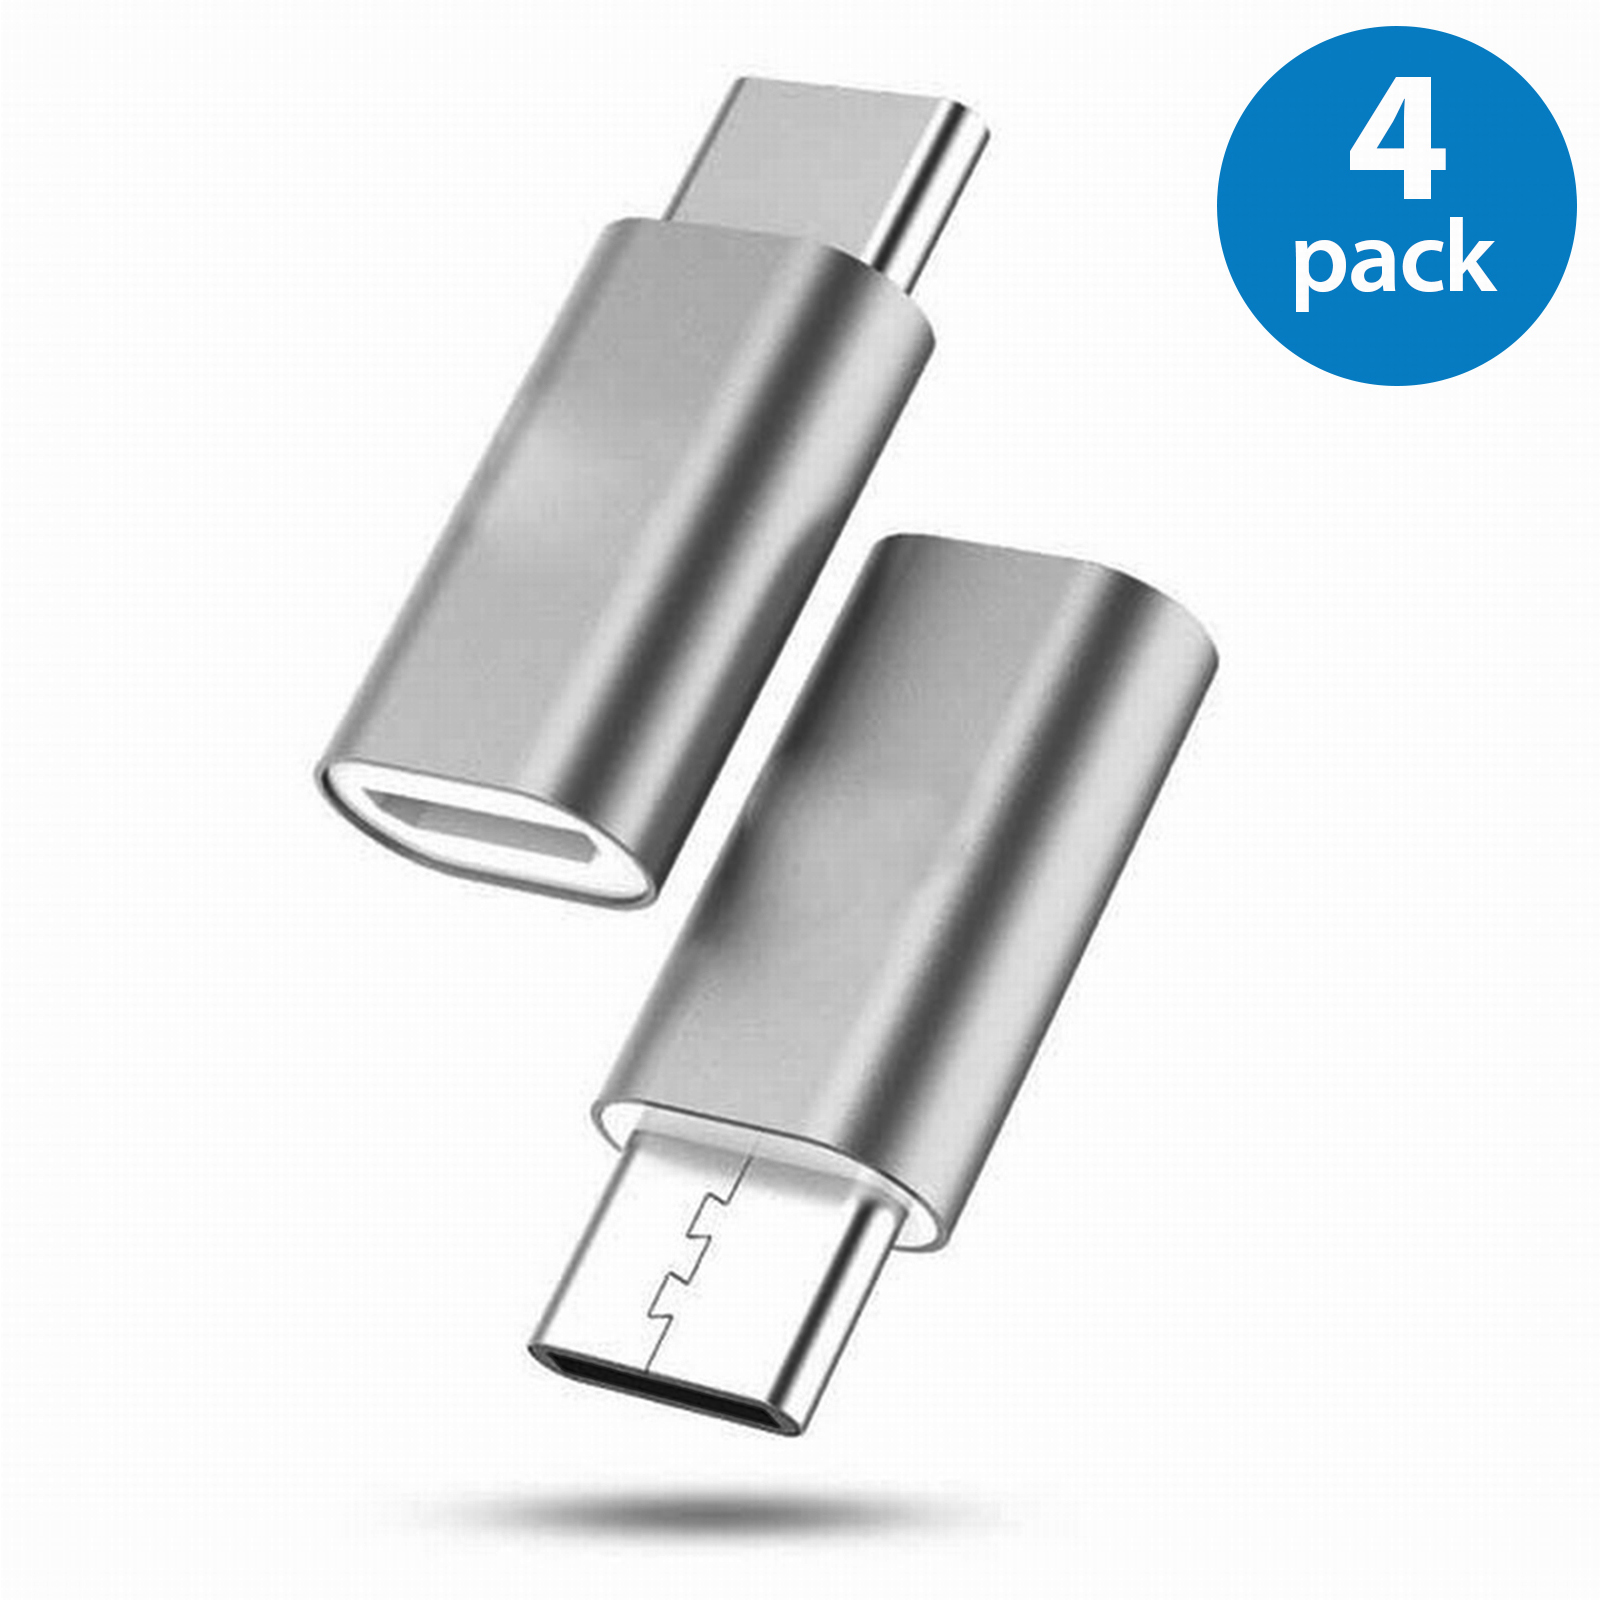 4x Afflux USB-C Adapter Connector USB Type C Male to Micro USB Female Adapter Charge Sync Converter For Samsung Galaxy S8 S8 + Note 8 Nexus 5X 6P LG G5 G6 V20 HTC 10 Google Pixel XL OnePlus 3 5 Gray